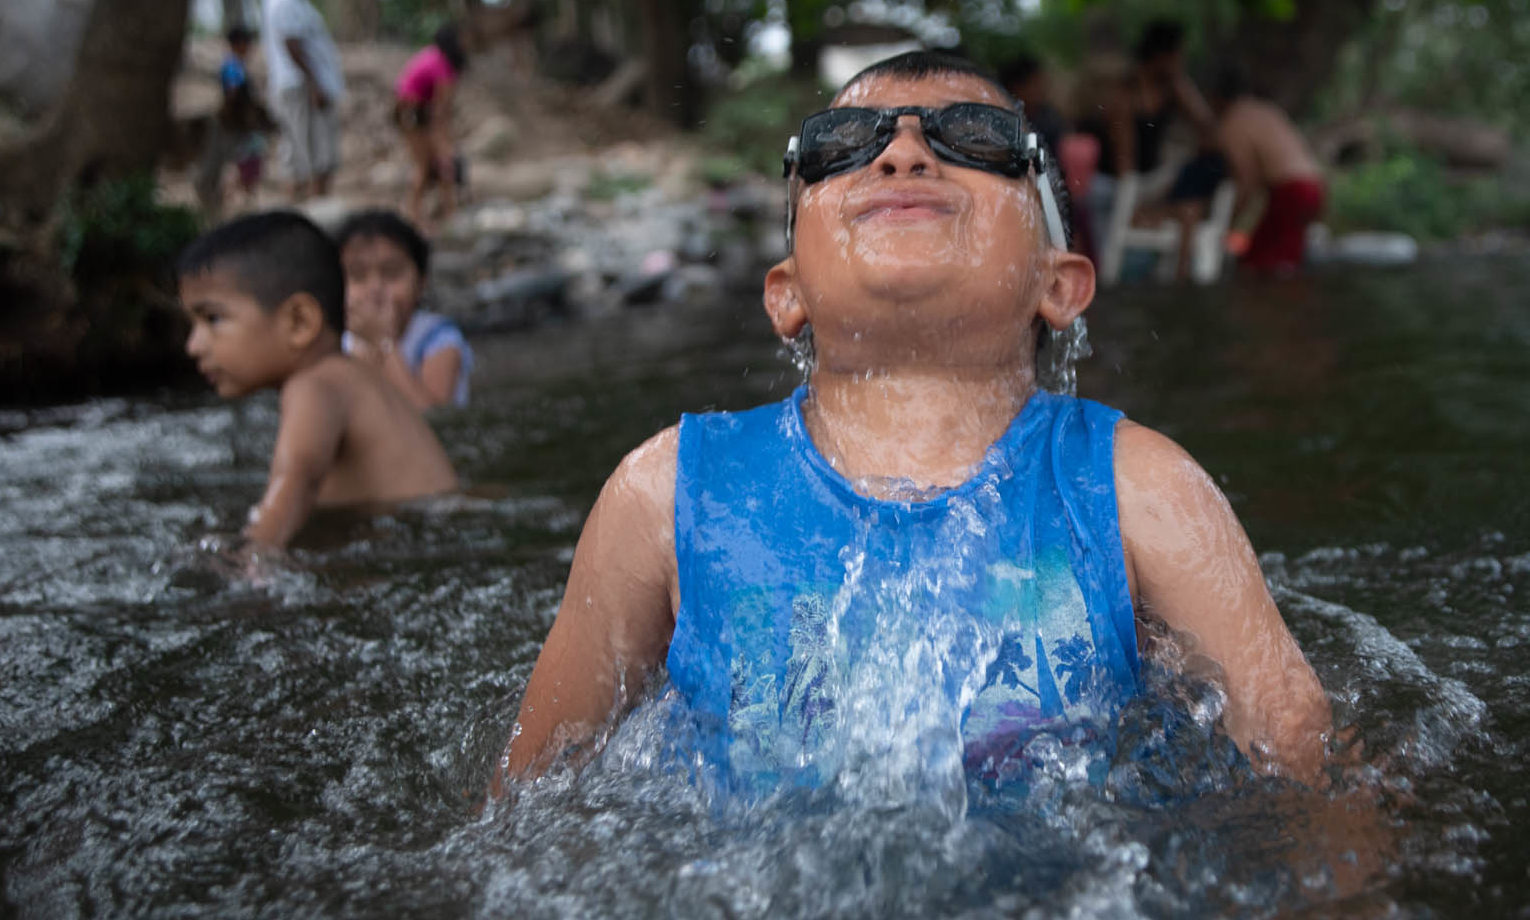 Mandatory Credit: Photo by Hector Adolfo Quintanar Perez/ZUMA Wire/Shutterstock (10608819a) Local children and their families take advantage of the fact that there are no tourists in their town to enjoy the waters of the River, closed to prevent the spread of COVID-19. This is how the inhabitants pass the quarantine. COVID-19: QUARANTINED: Mexico, Jalcomulco, Veracruz, México - 09 Apr 2020